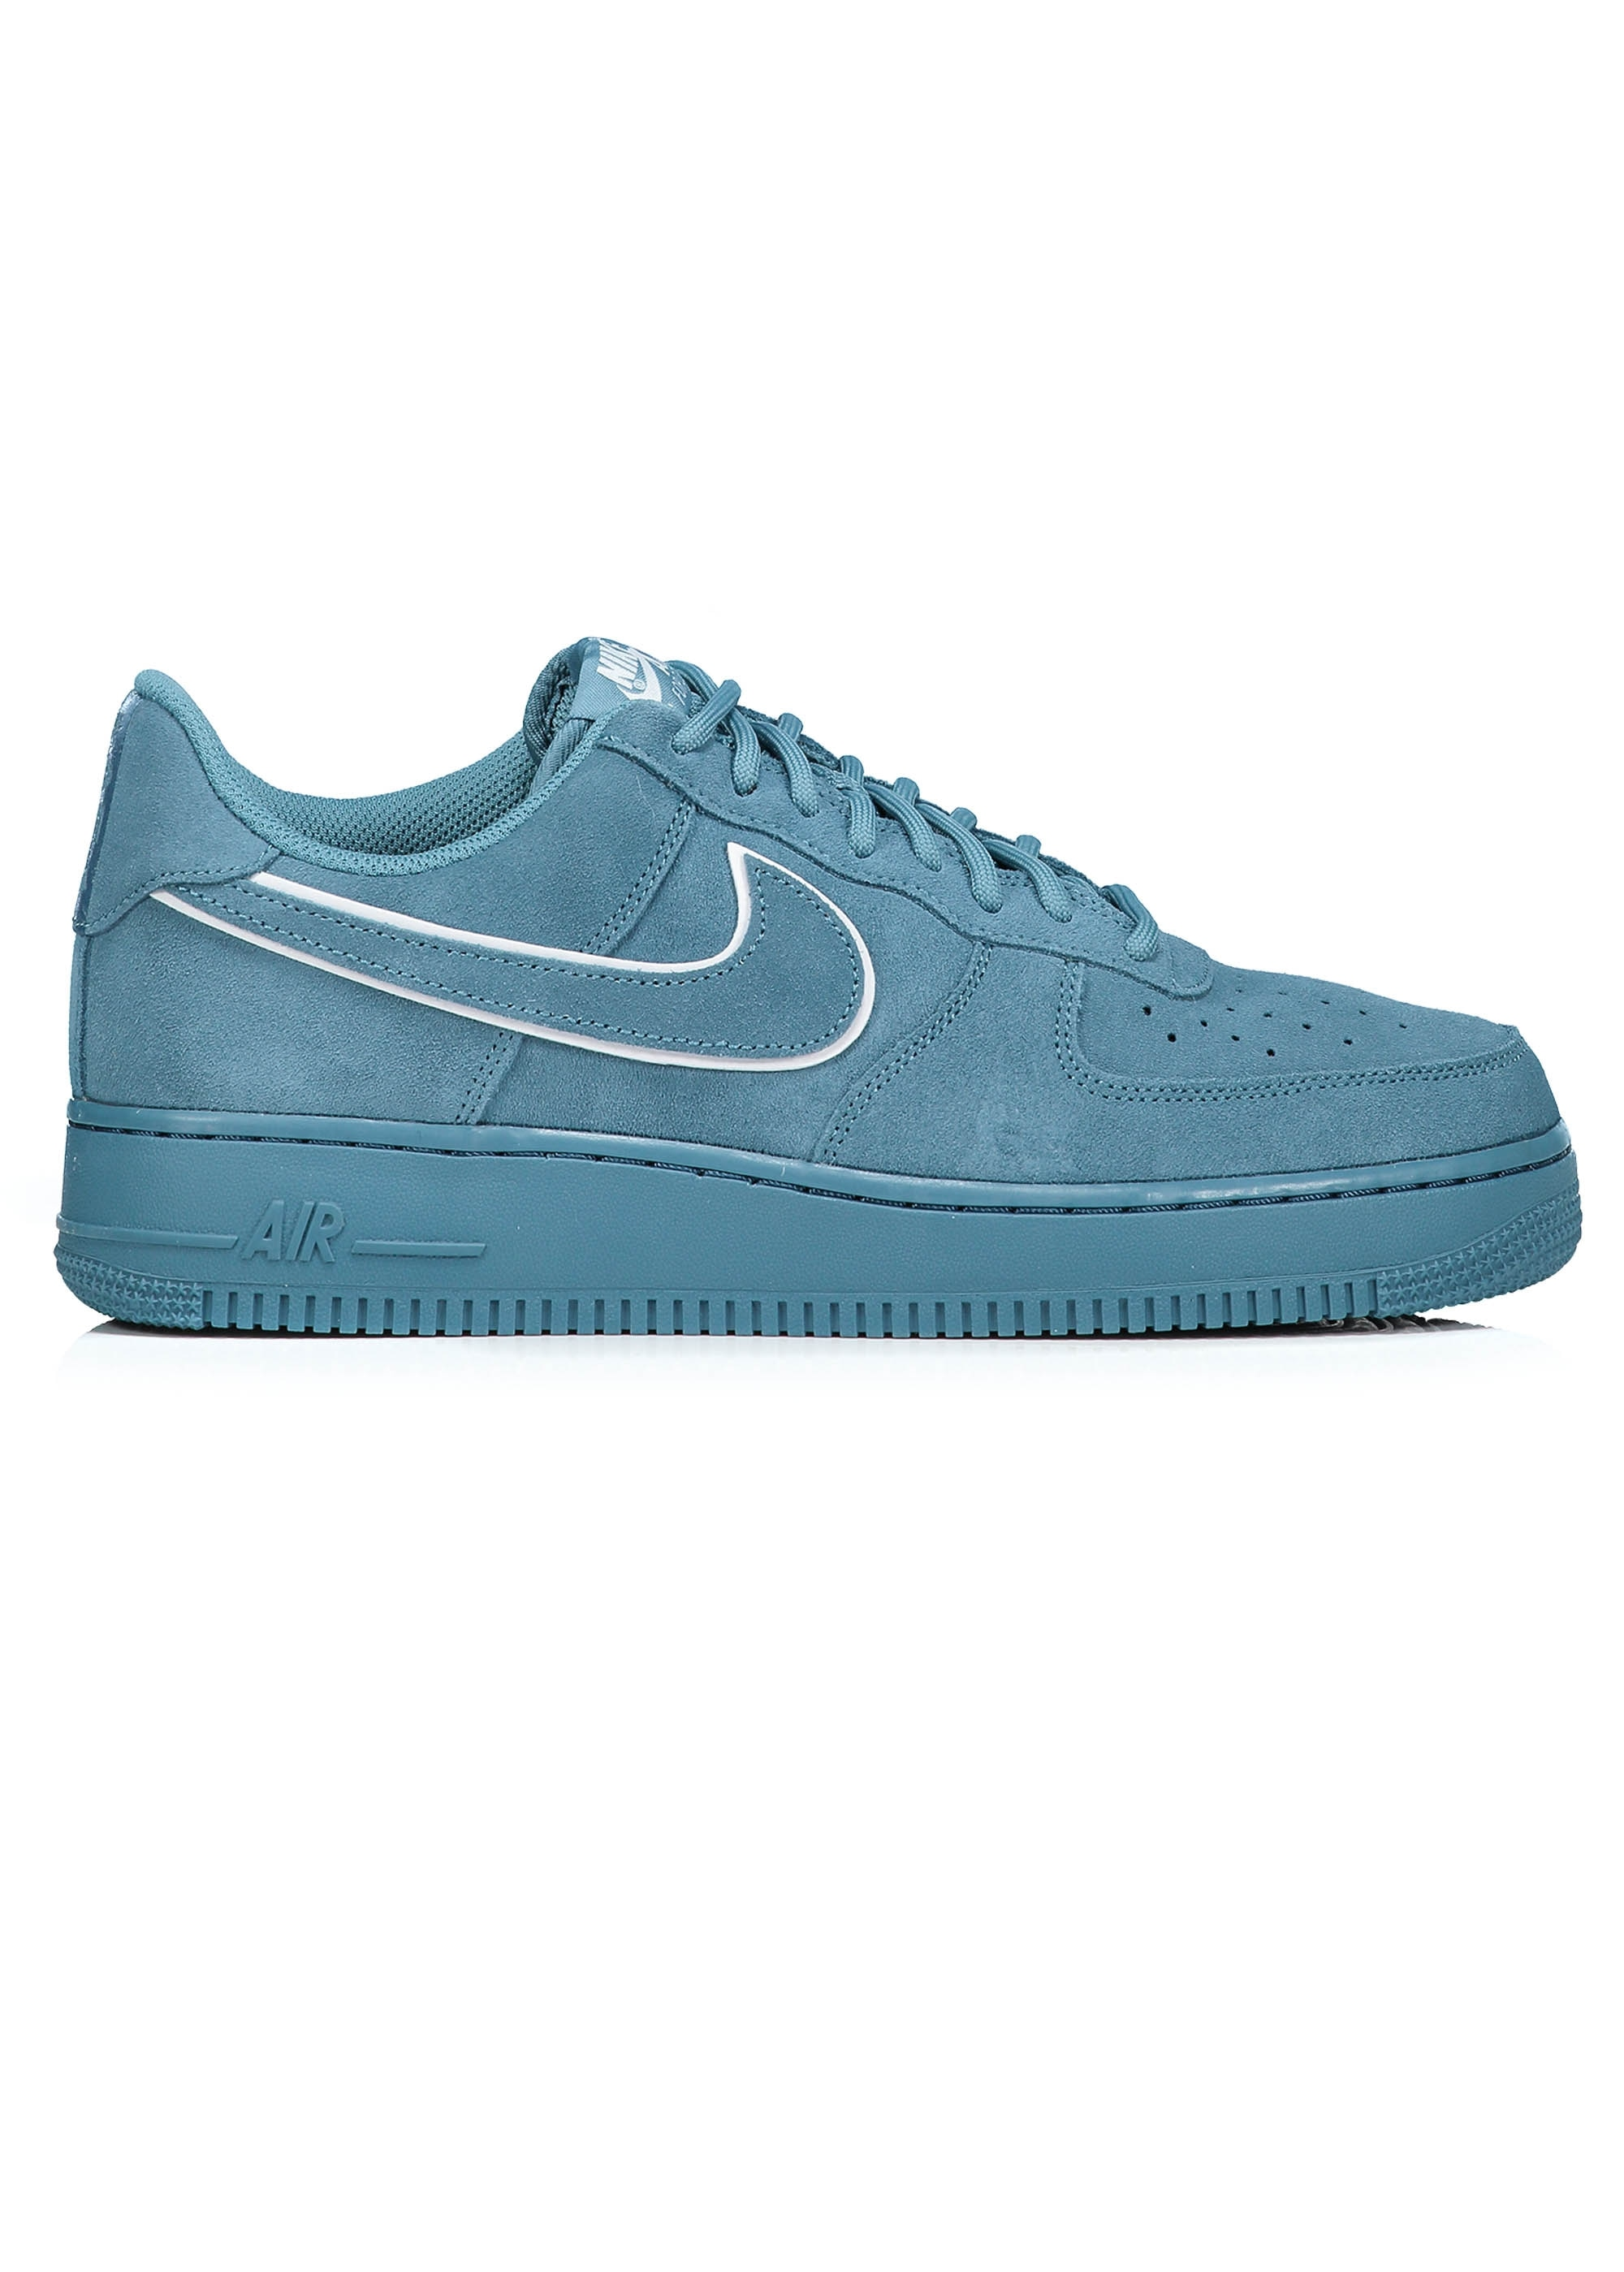 767359d2d01ad Nike Footwear Air Force 1 07 LV8 Suede - Noise Aqua - Trainers from Triads  UK